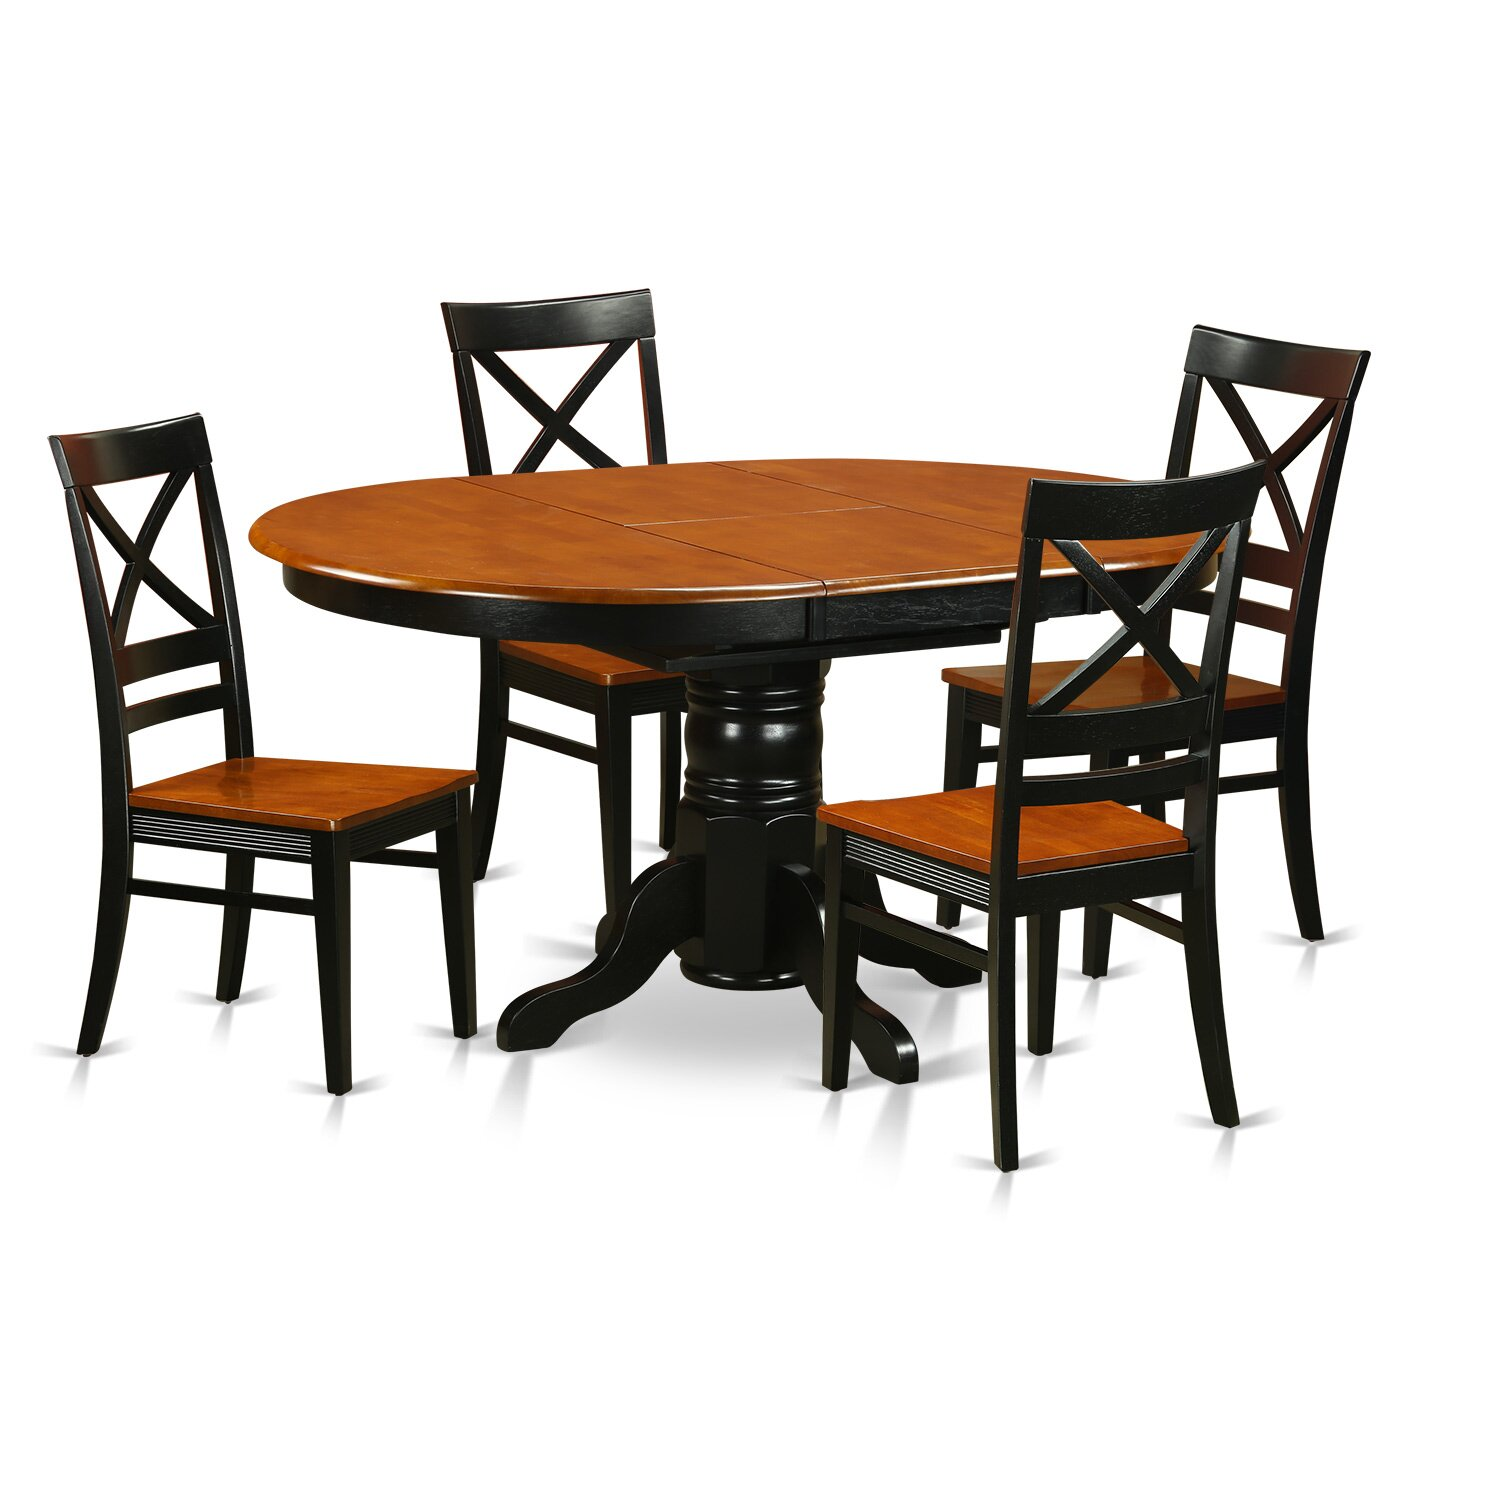 Dining Room Sets Wood: Wooden Importers Avon 5 Piece Dining Set & Reviews